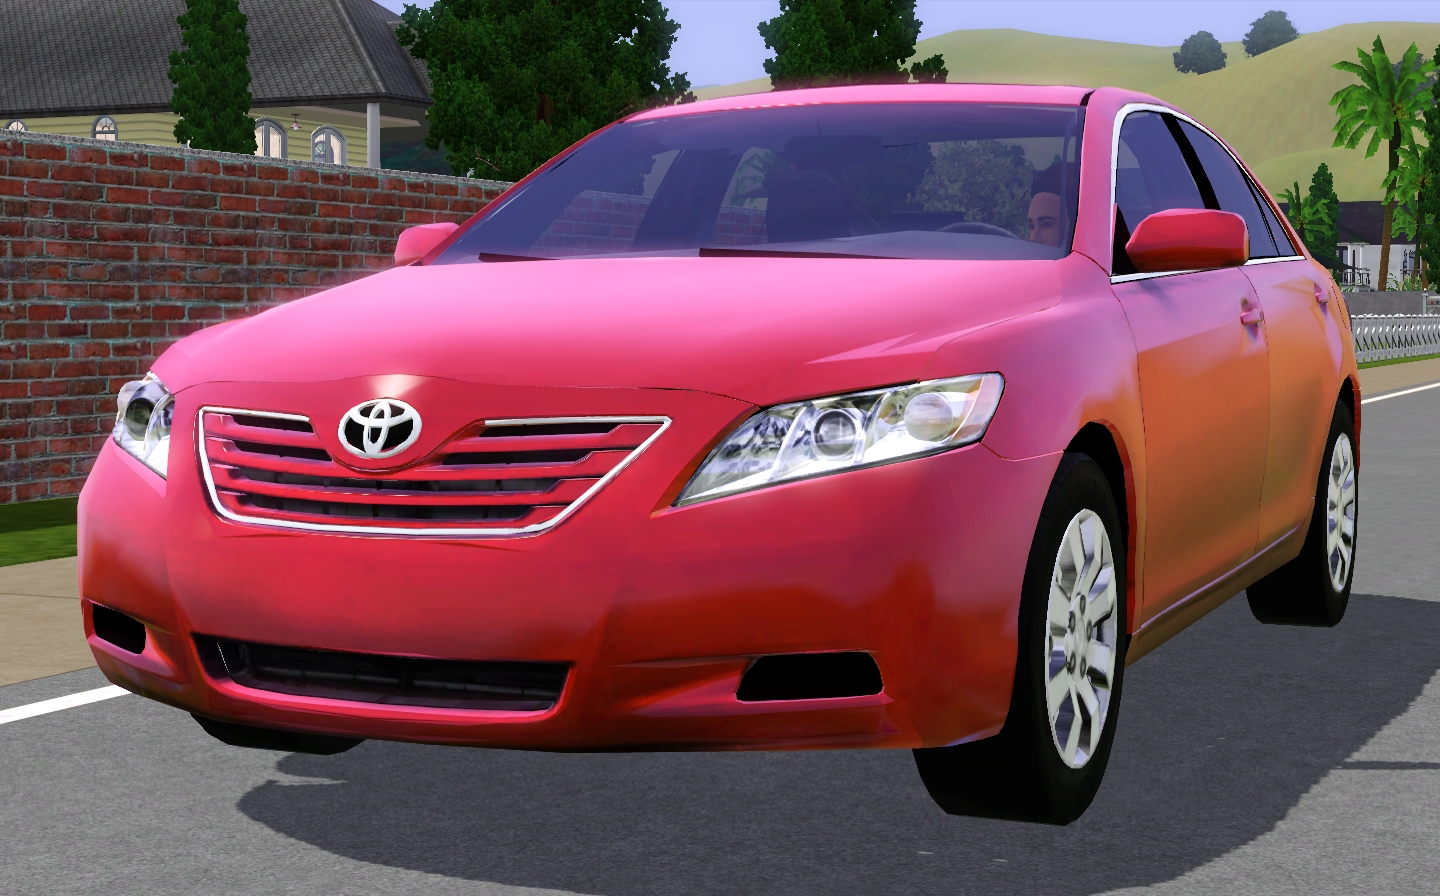 2008 Toyota Camry by Fresh-Prince